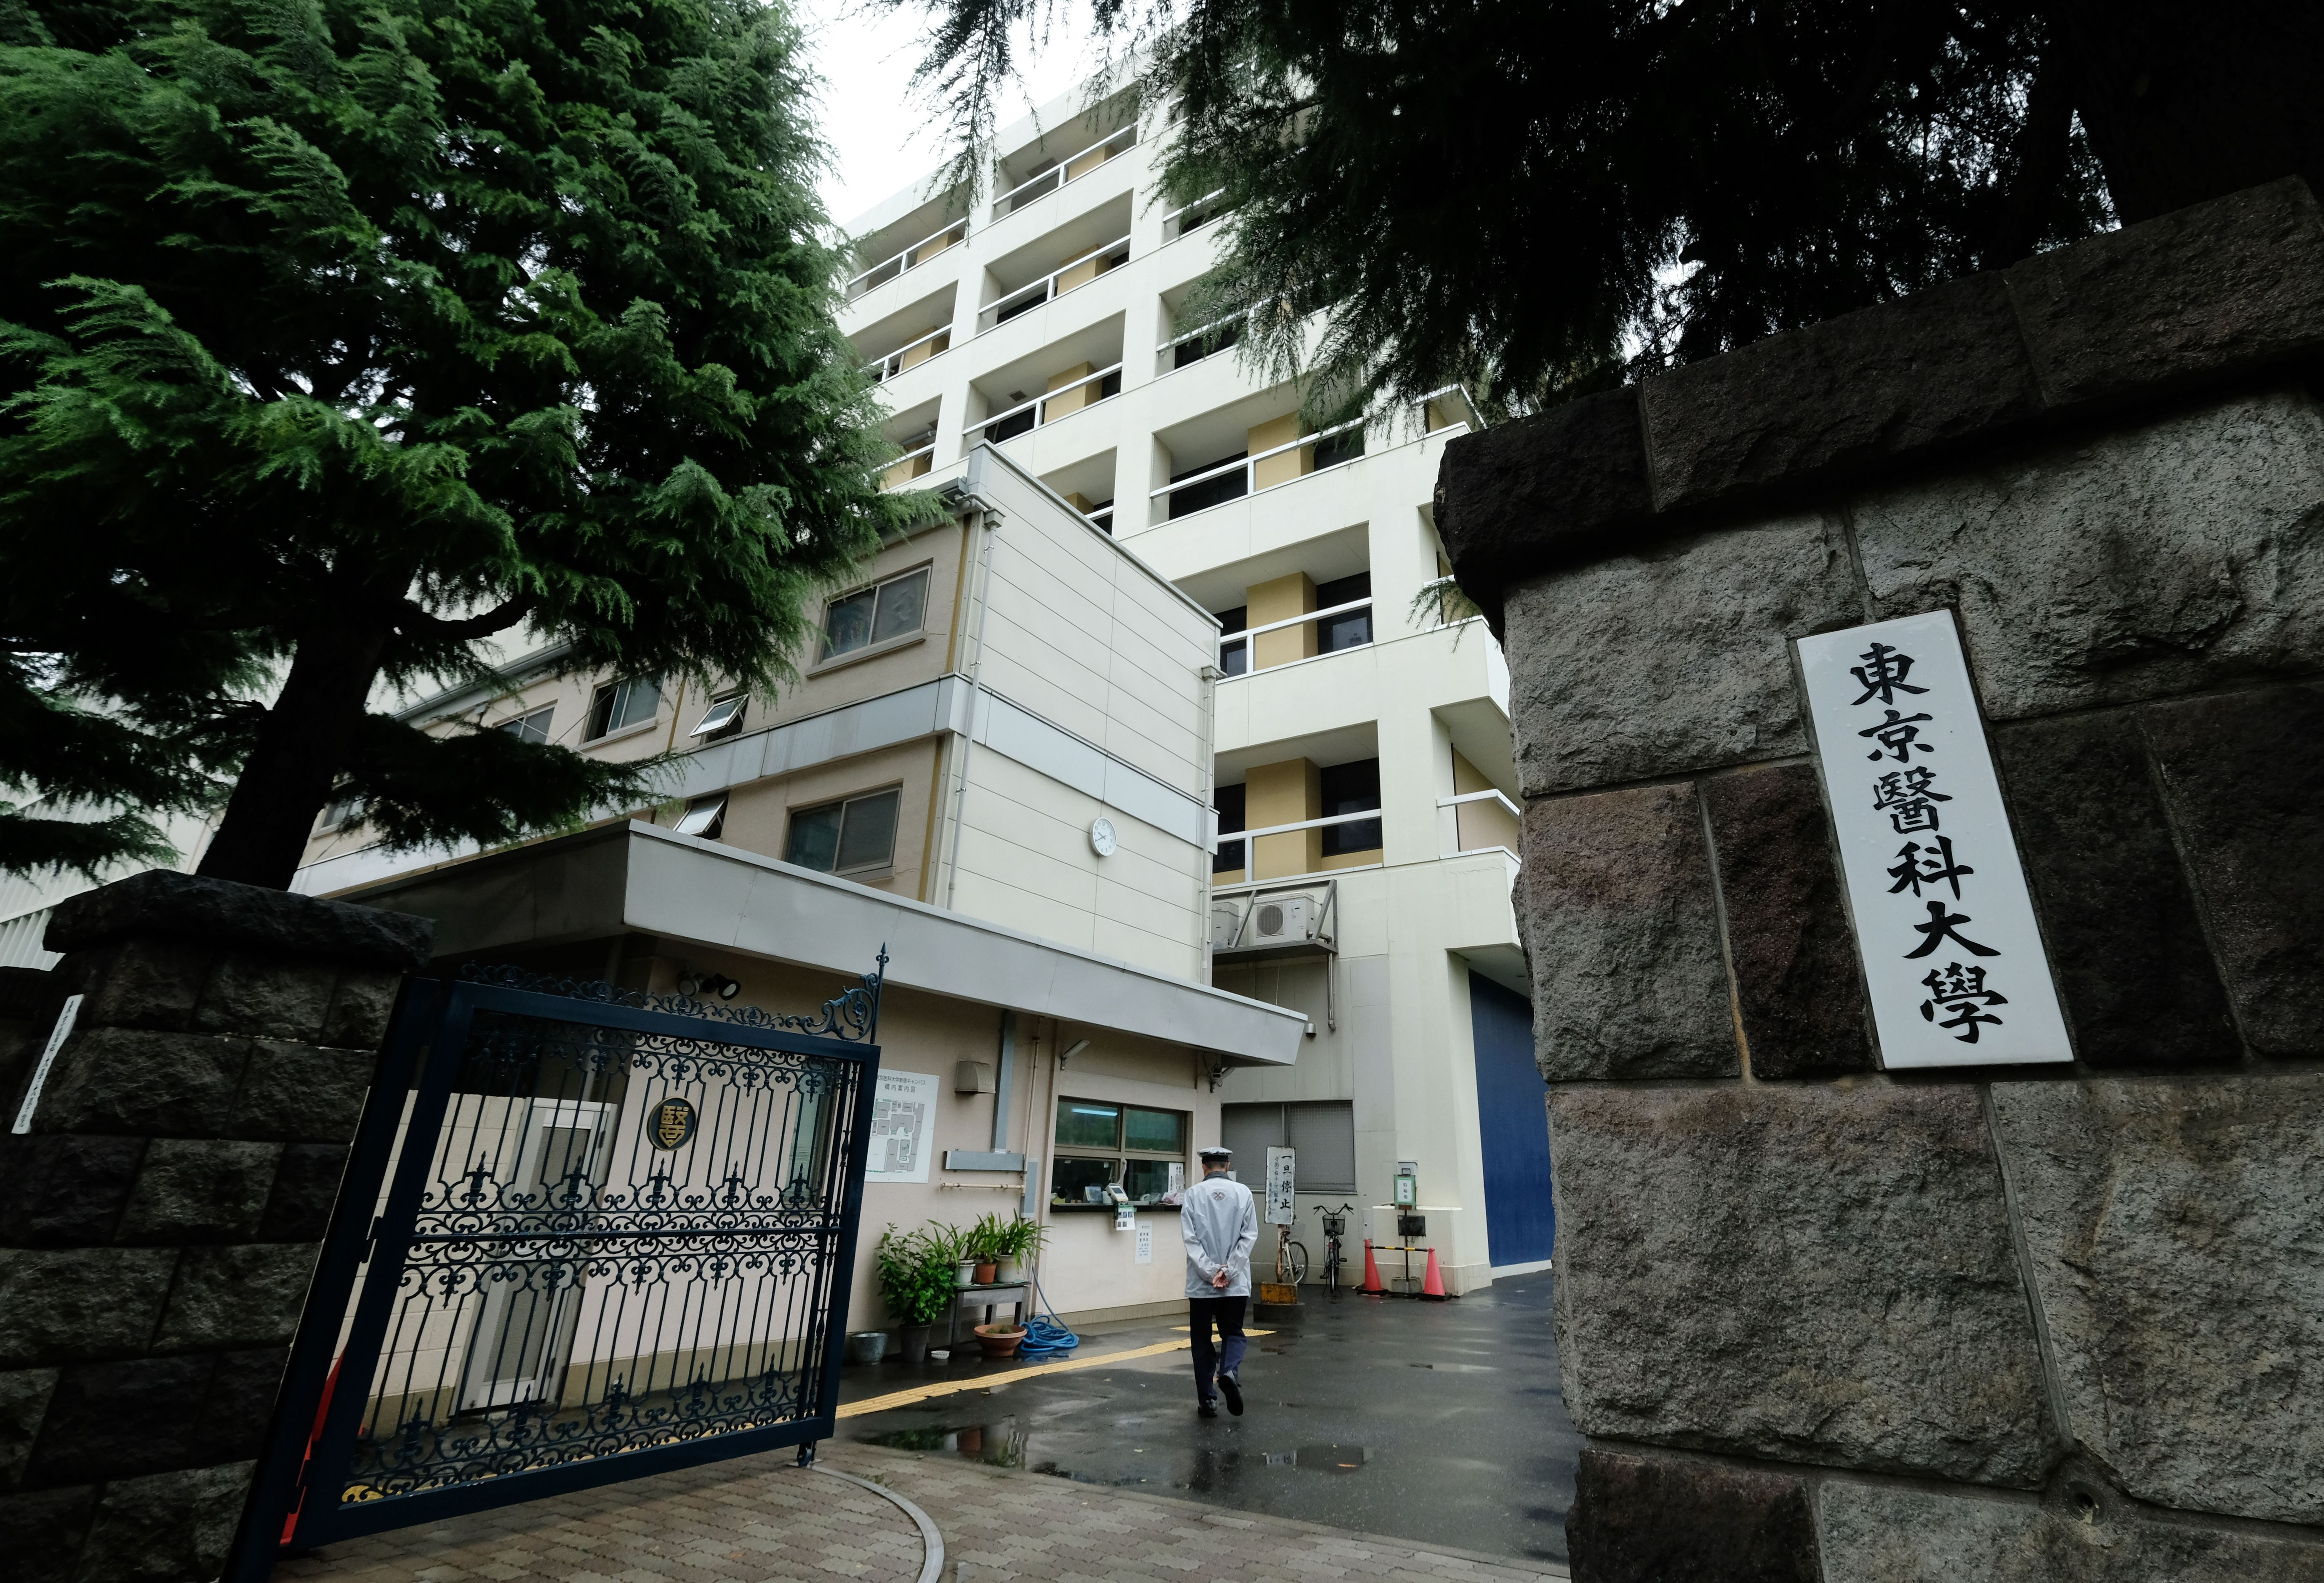 The entrance to the Tokyo Medical University is seen in Tokyo on Aug. 8, 2018.